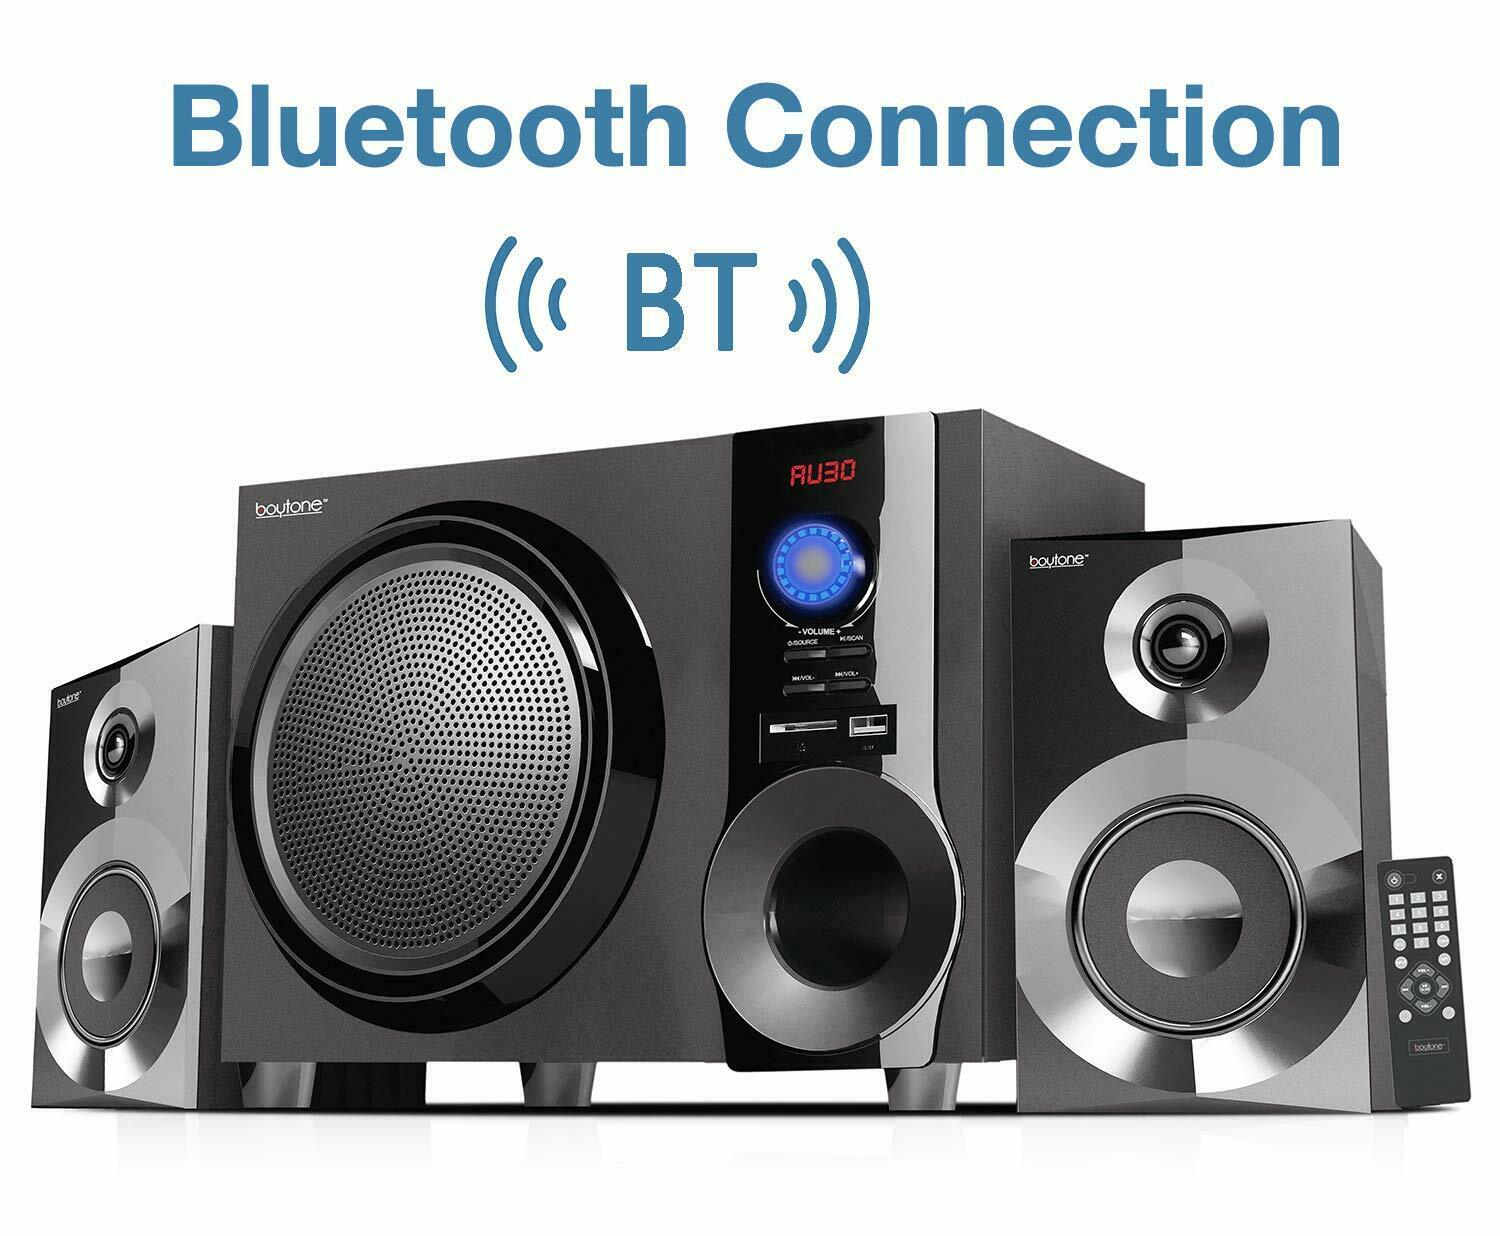 Boytone BT-225FB Powerful Wireless Bluetooth Home Speaker System 60 W, FM Radio